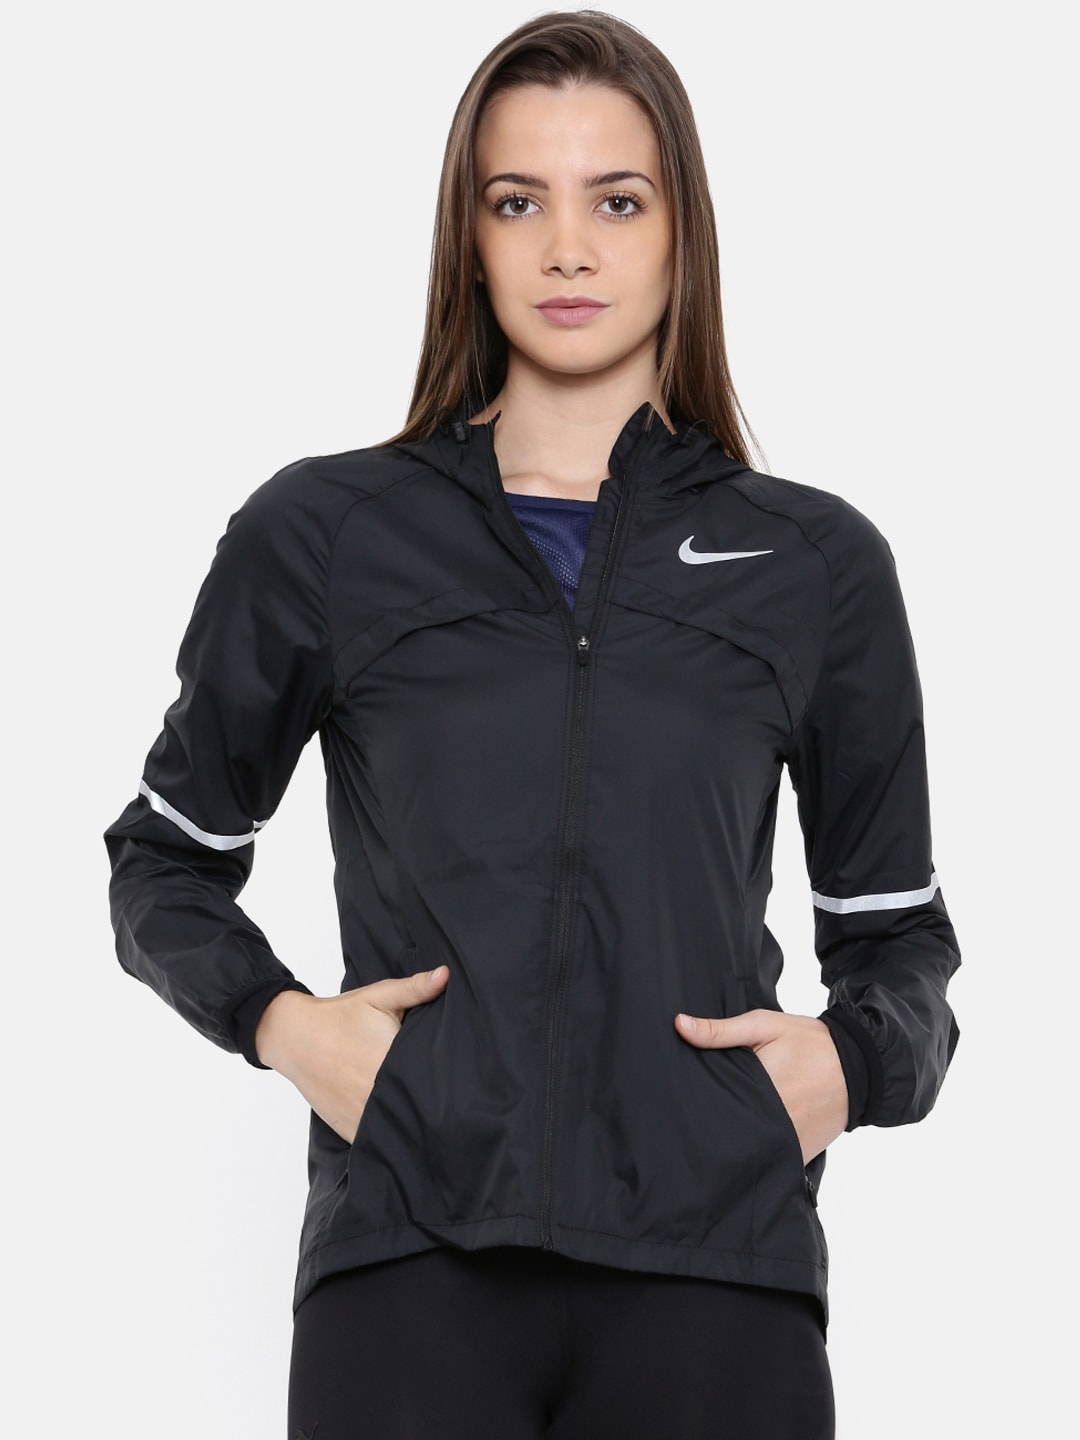 Nike - Shop for Nike Apparels Online in India  02f6506dd